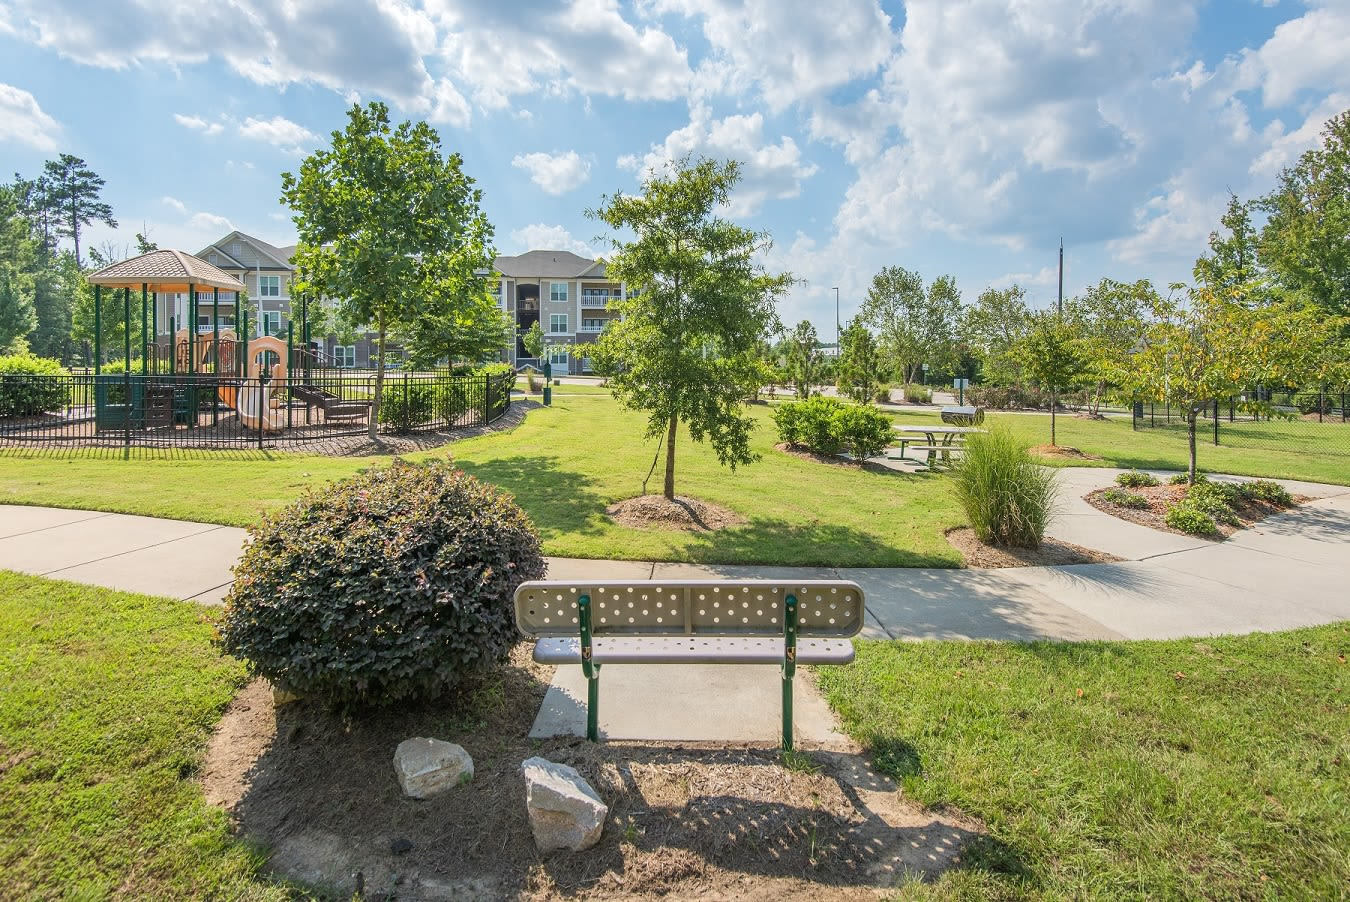 Outdoor seating areas and walking trails at apartments in Raleigh, North Carolina